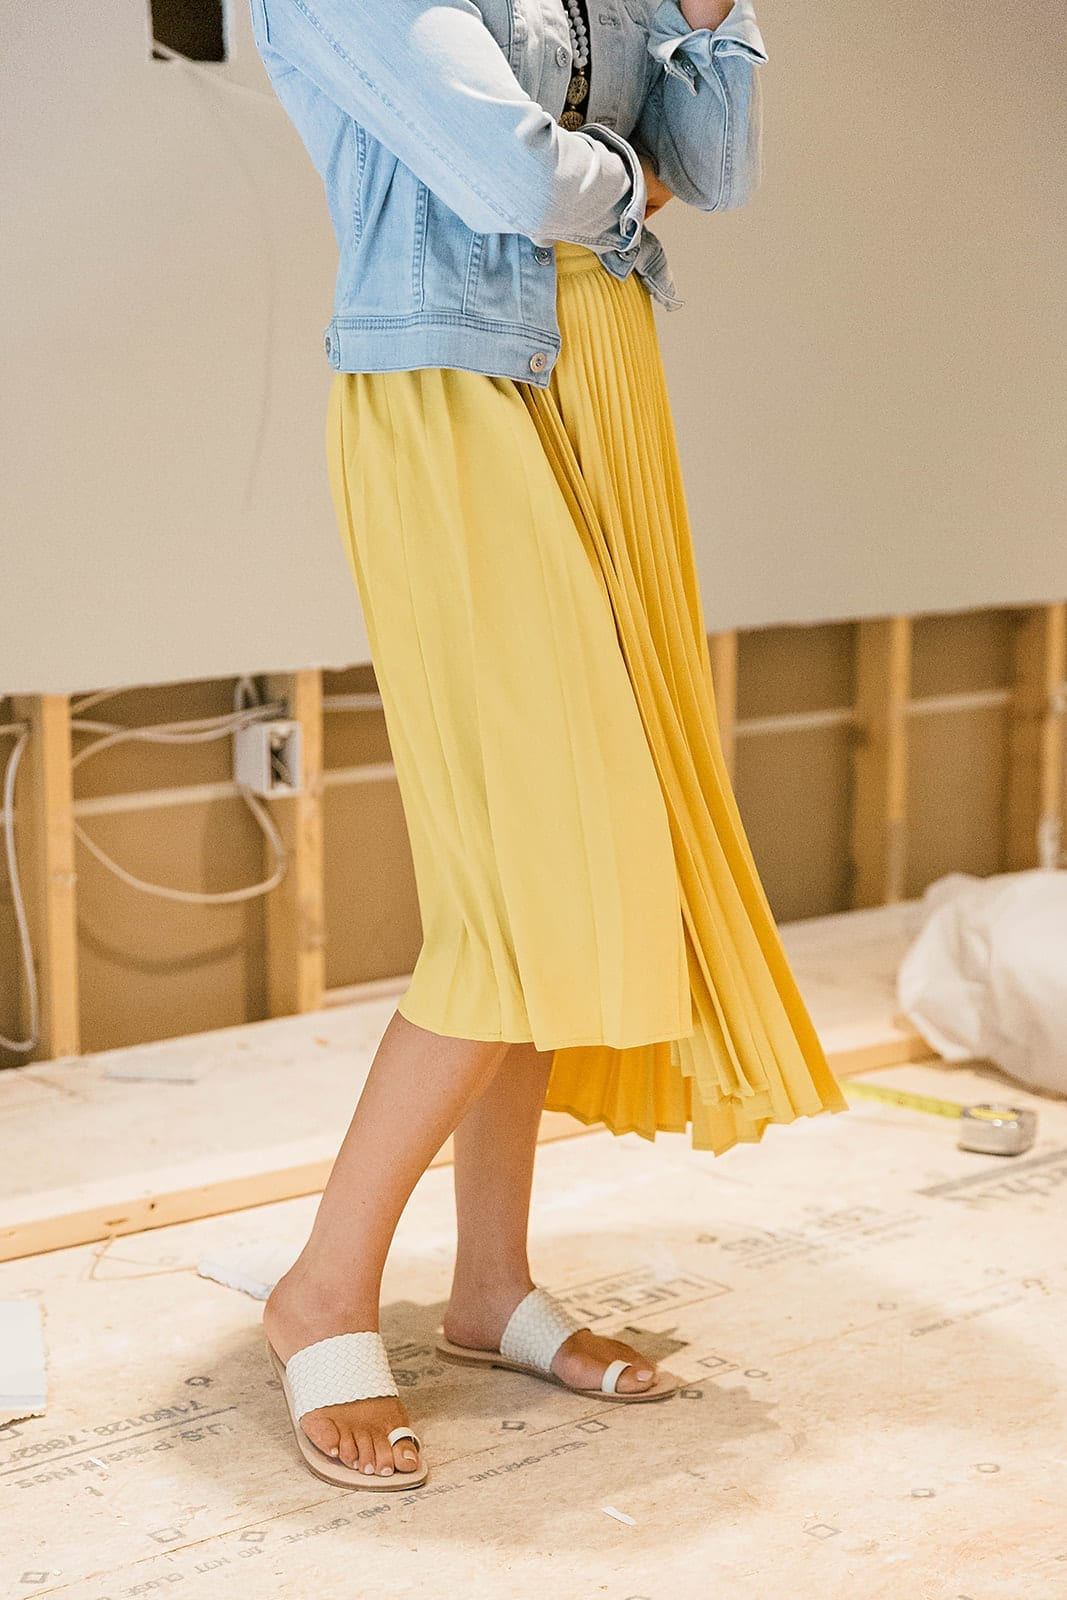 Woven Summer Sandals - what to wear with yellow.